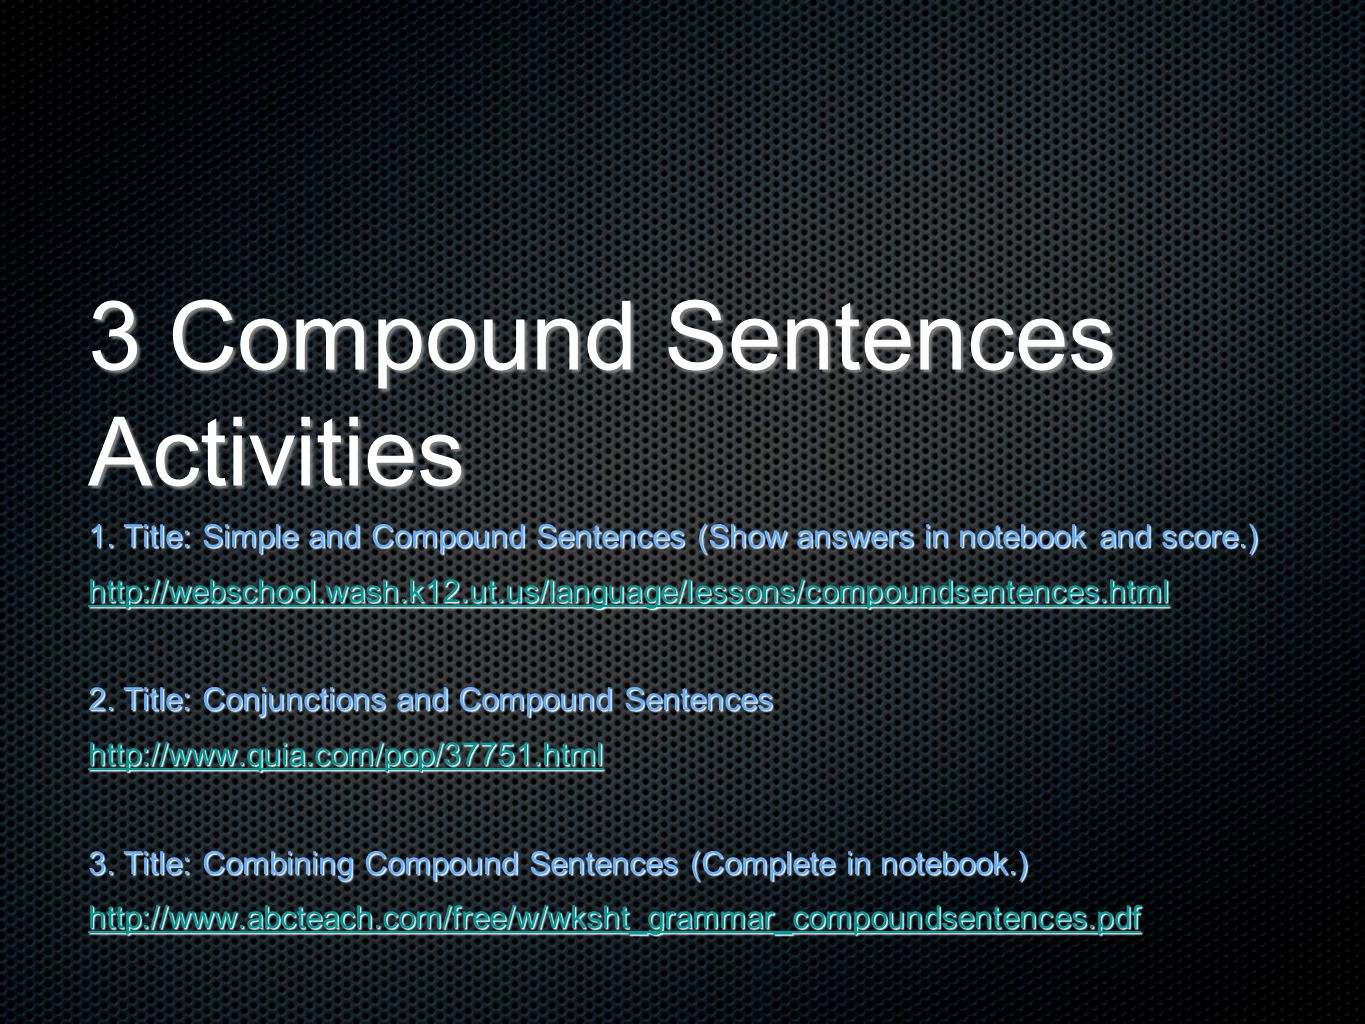 3 Compound Sentences Activities